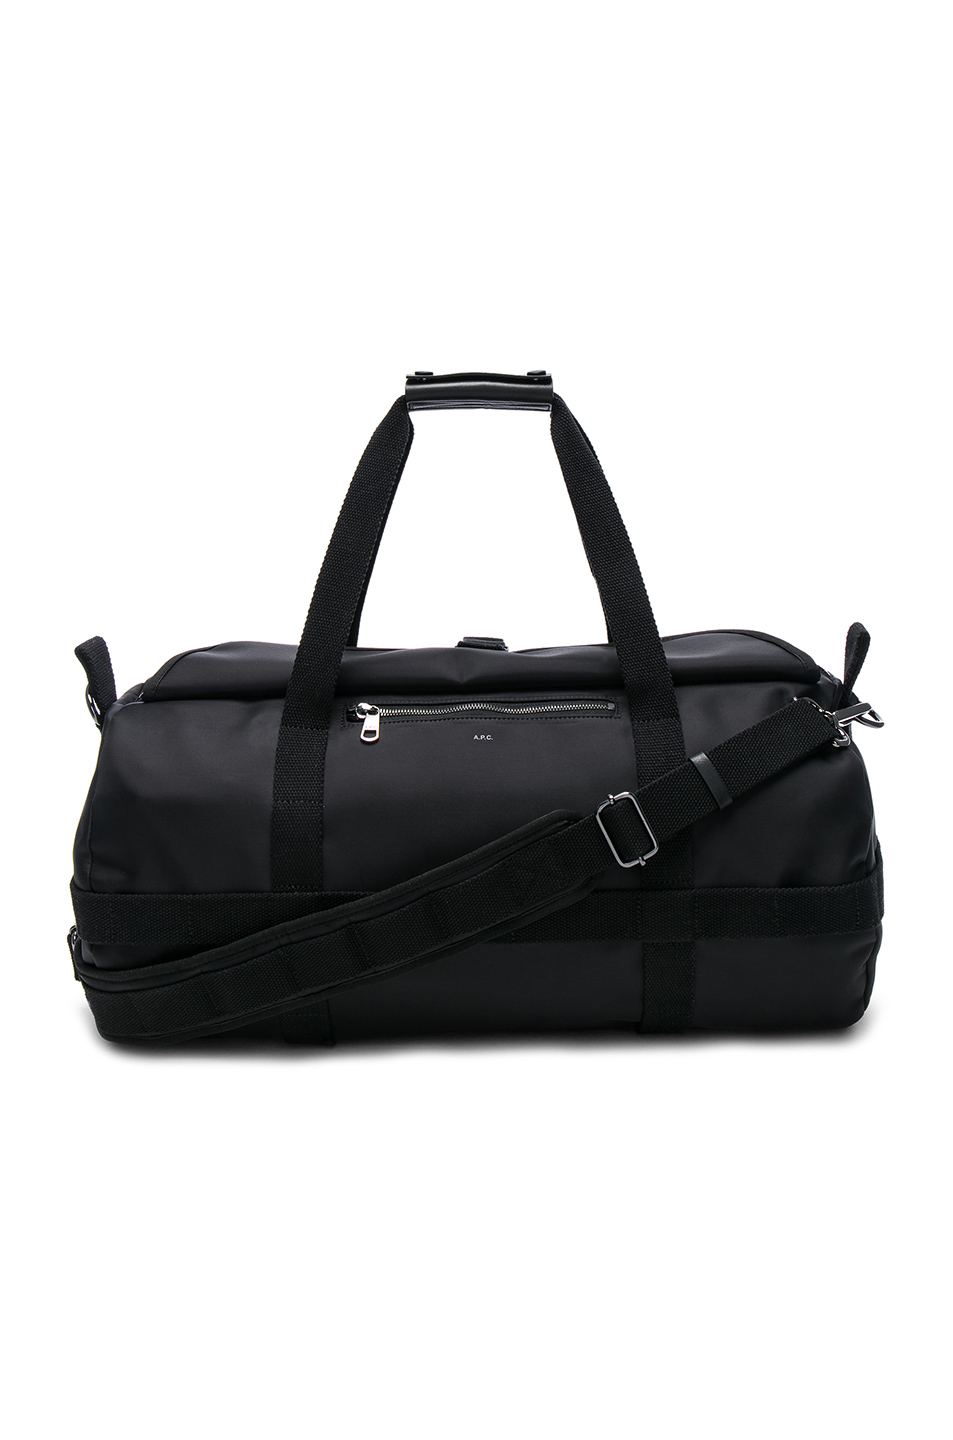 A.P.C. Cyril Bag in Black